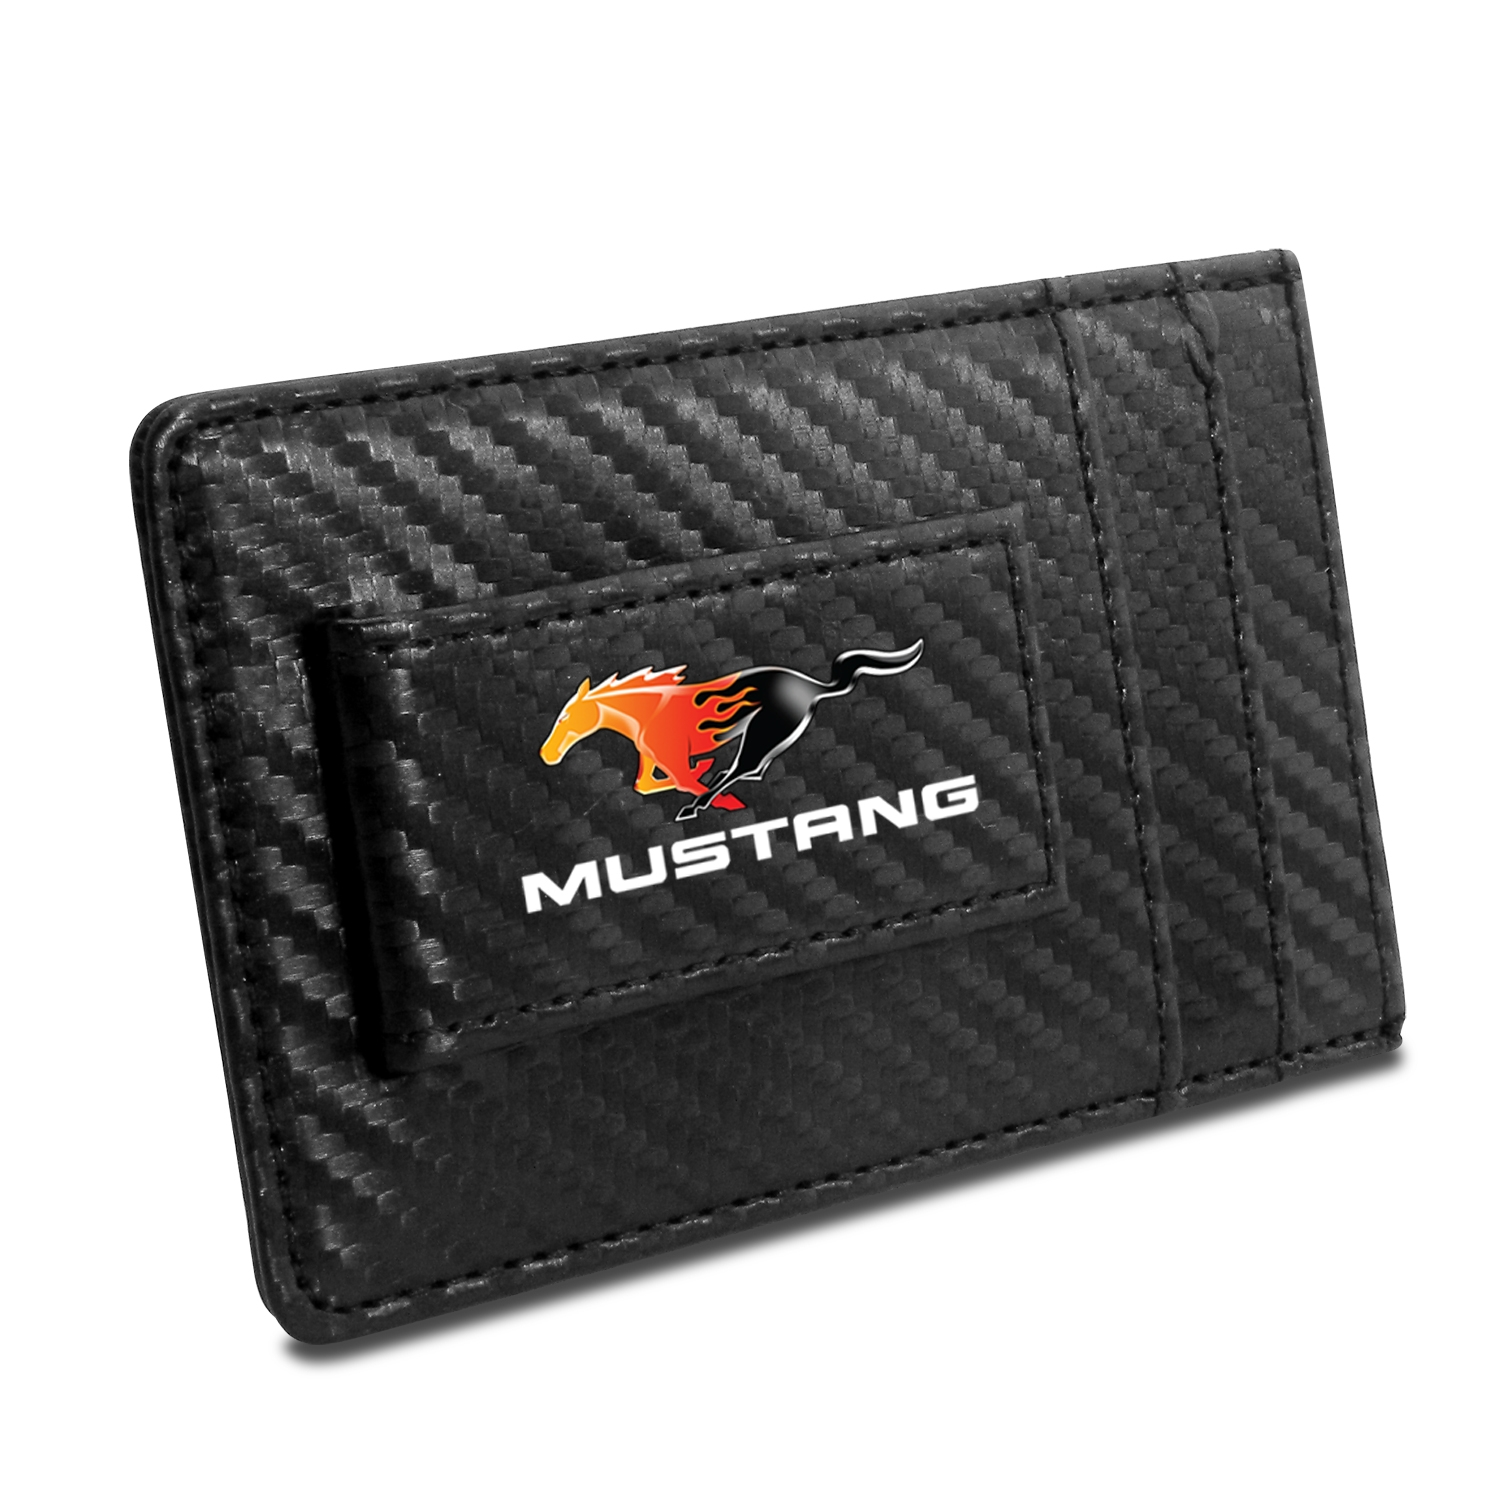 Ford Mustang Flame Pony Black Carbon Fiber RFID Card Holder Wallet